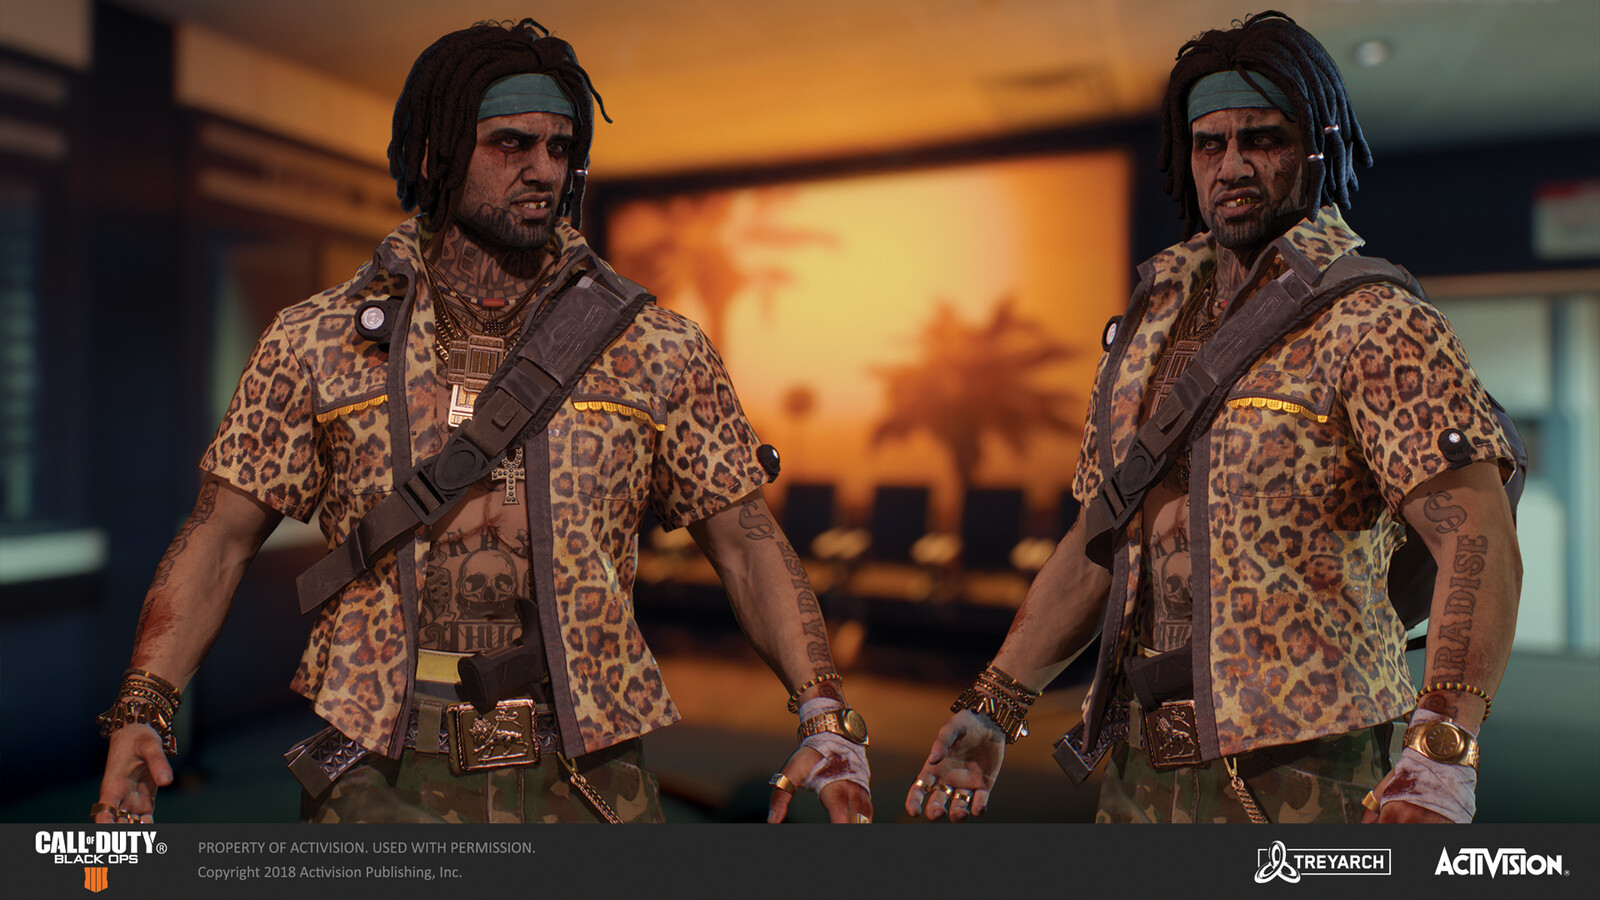 Responsible for texturing Crash's face/body tattoos for the 'Snitch' skin released for the Grand Heist DLC. Concept by John Liew, body modeled by our external partners, in collaboration with the talented artists at Treyarch. Head model by Loudvik Akopyan.